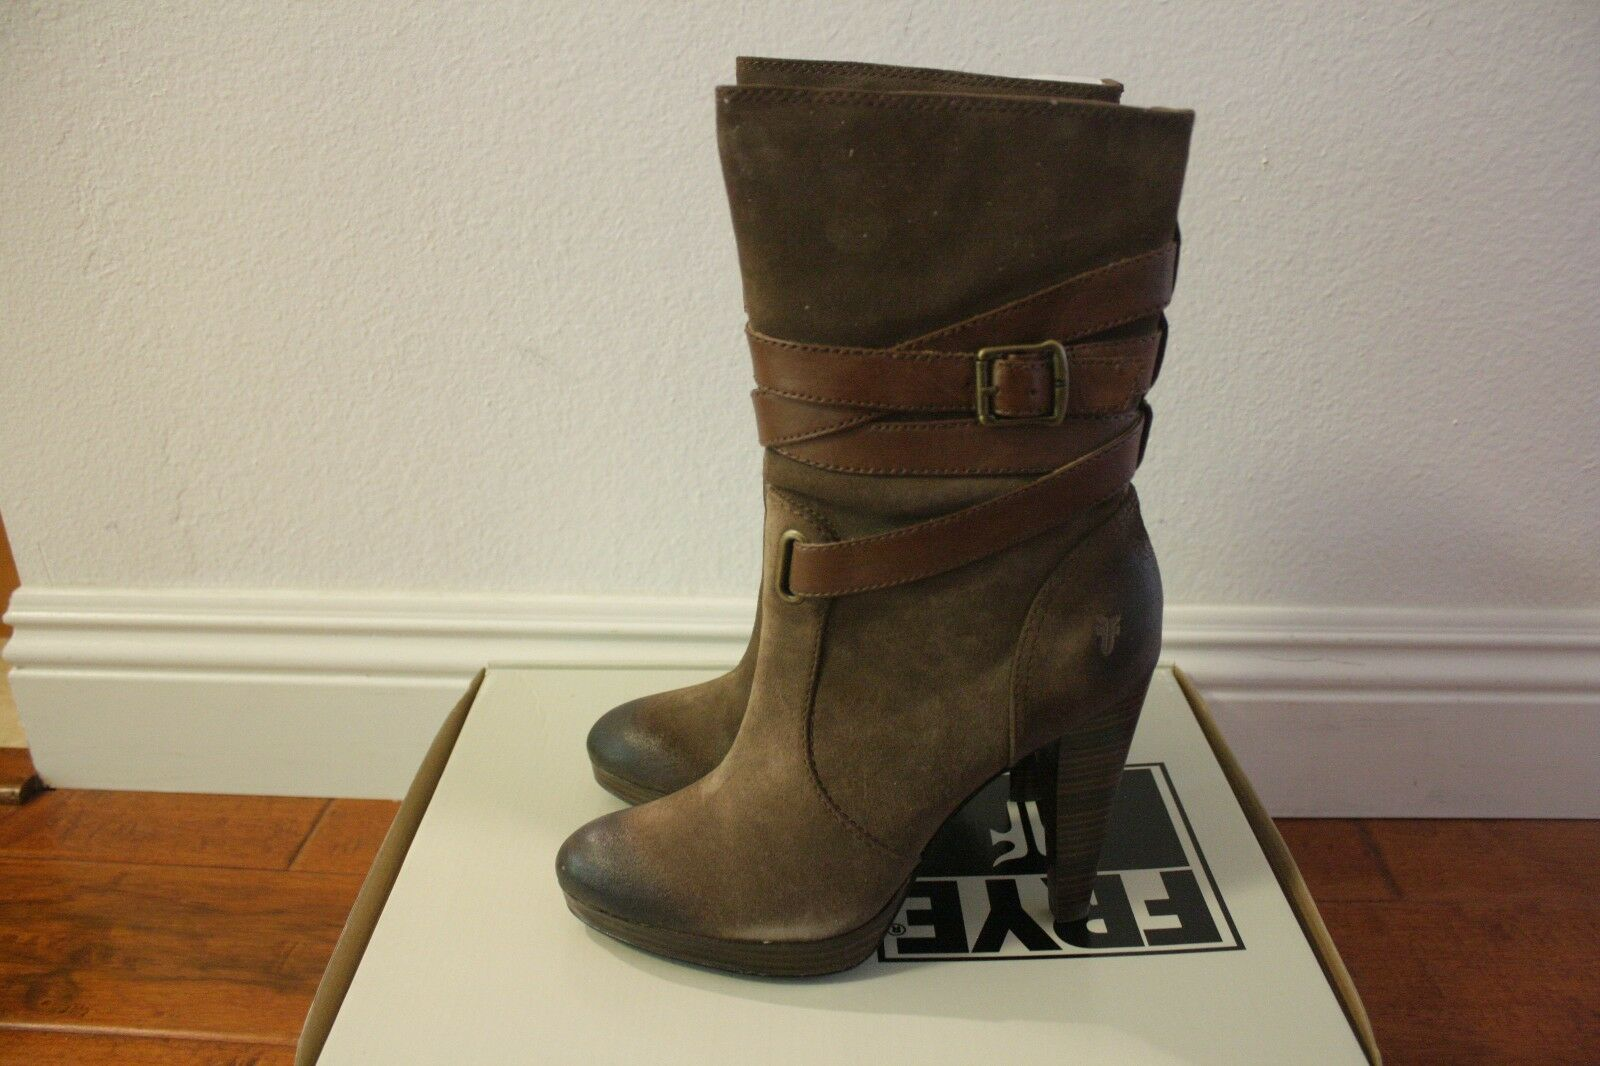 FRYE Womens Harlow Multi Strap Boots NEW Size 10 Dark Brown Suede $358